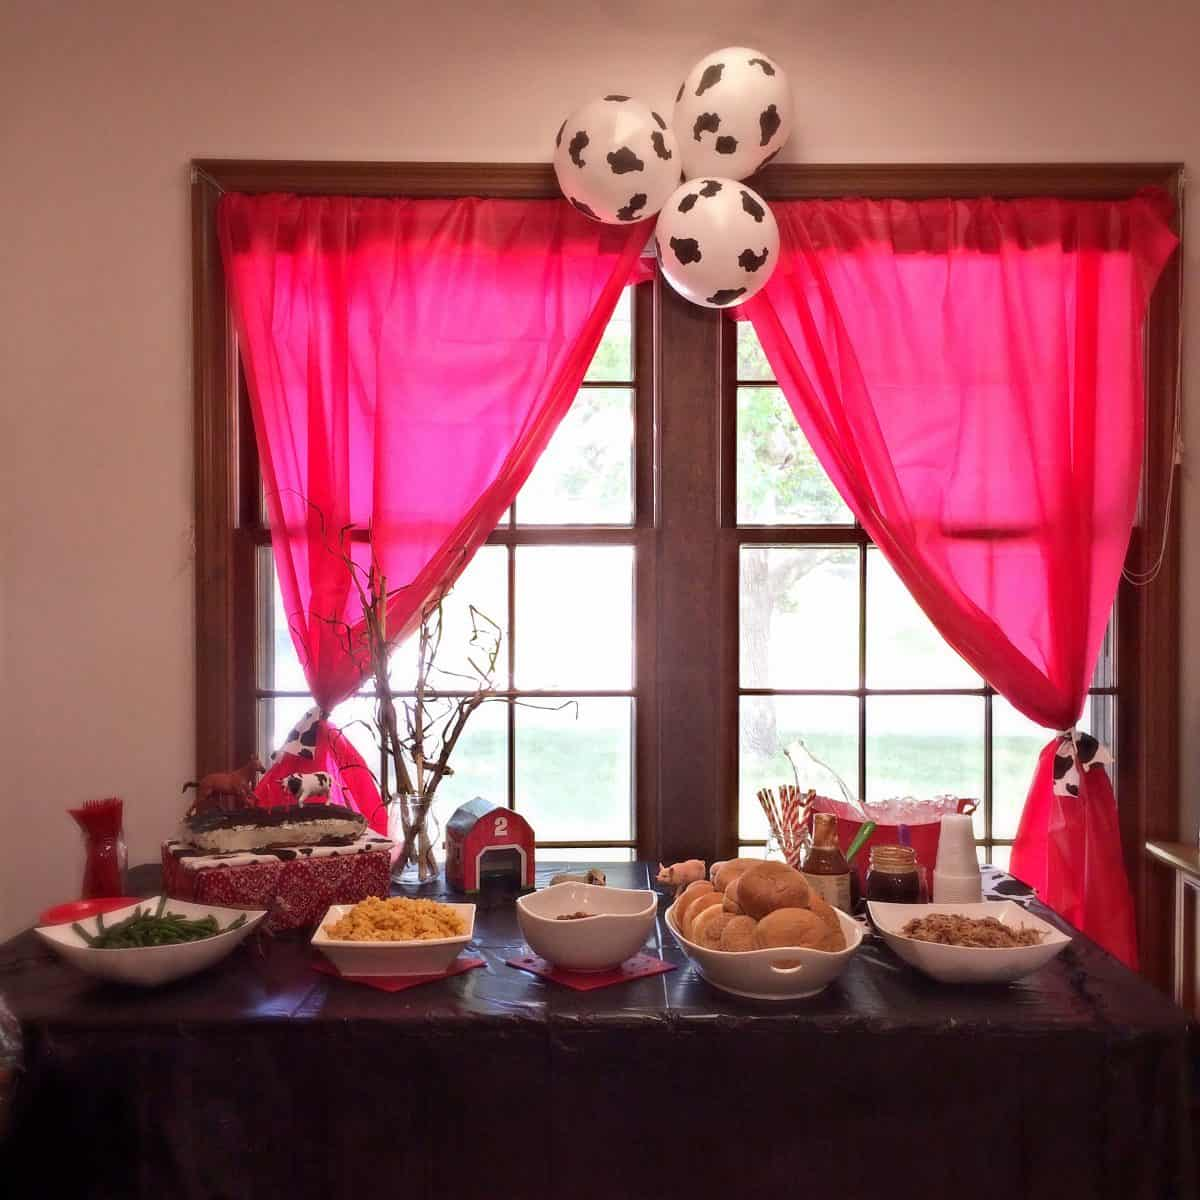 Farm Animal Birthday Party. Decoration ideas, farm food, activity, and fun drinks! Food Table